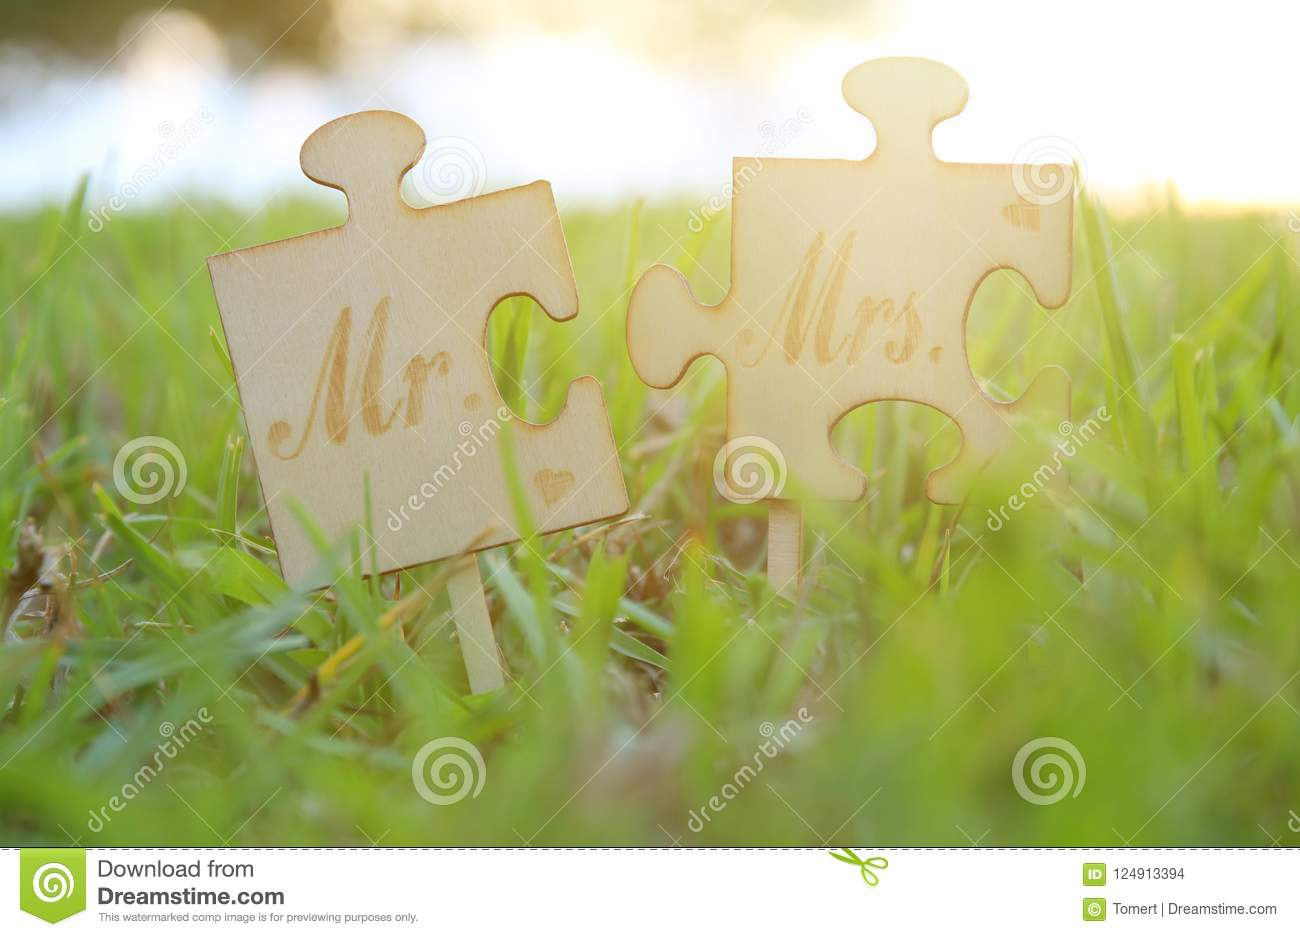 Mr and Mrs sign. Two puzzle pieces placed in the grass during sunset time. harmony and wedding concept.